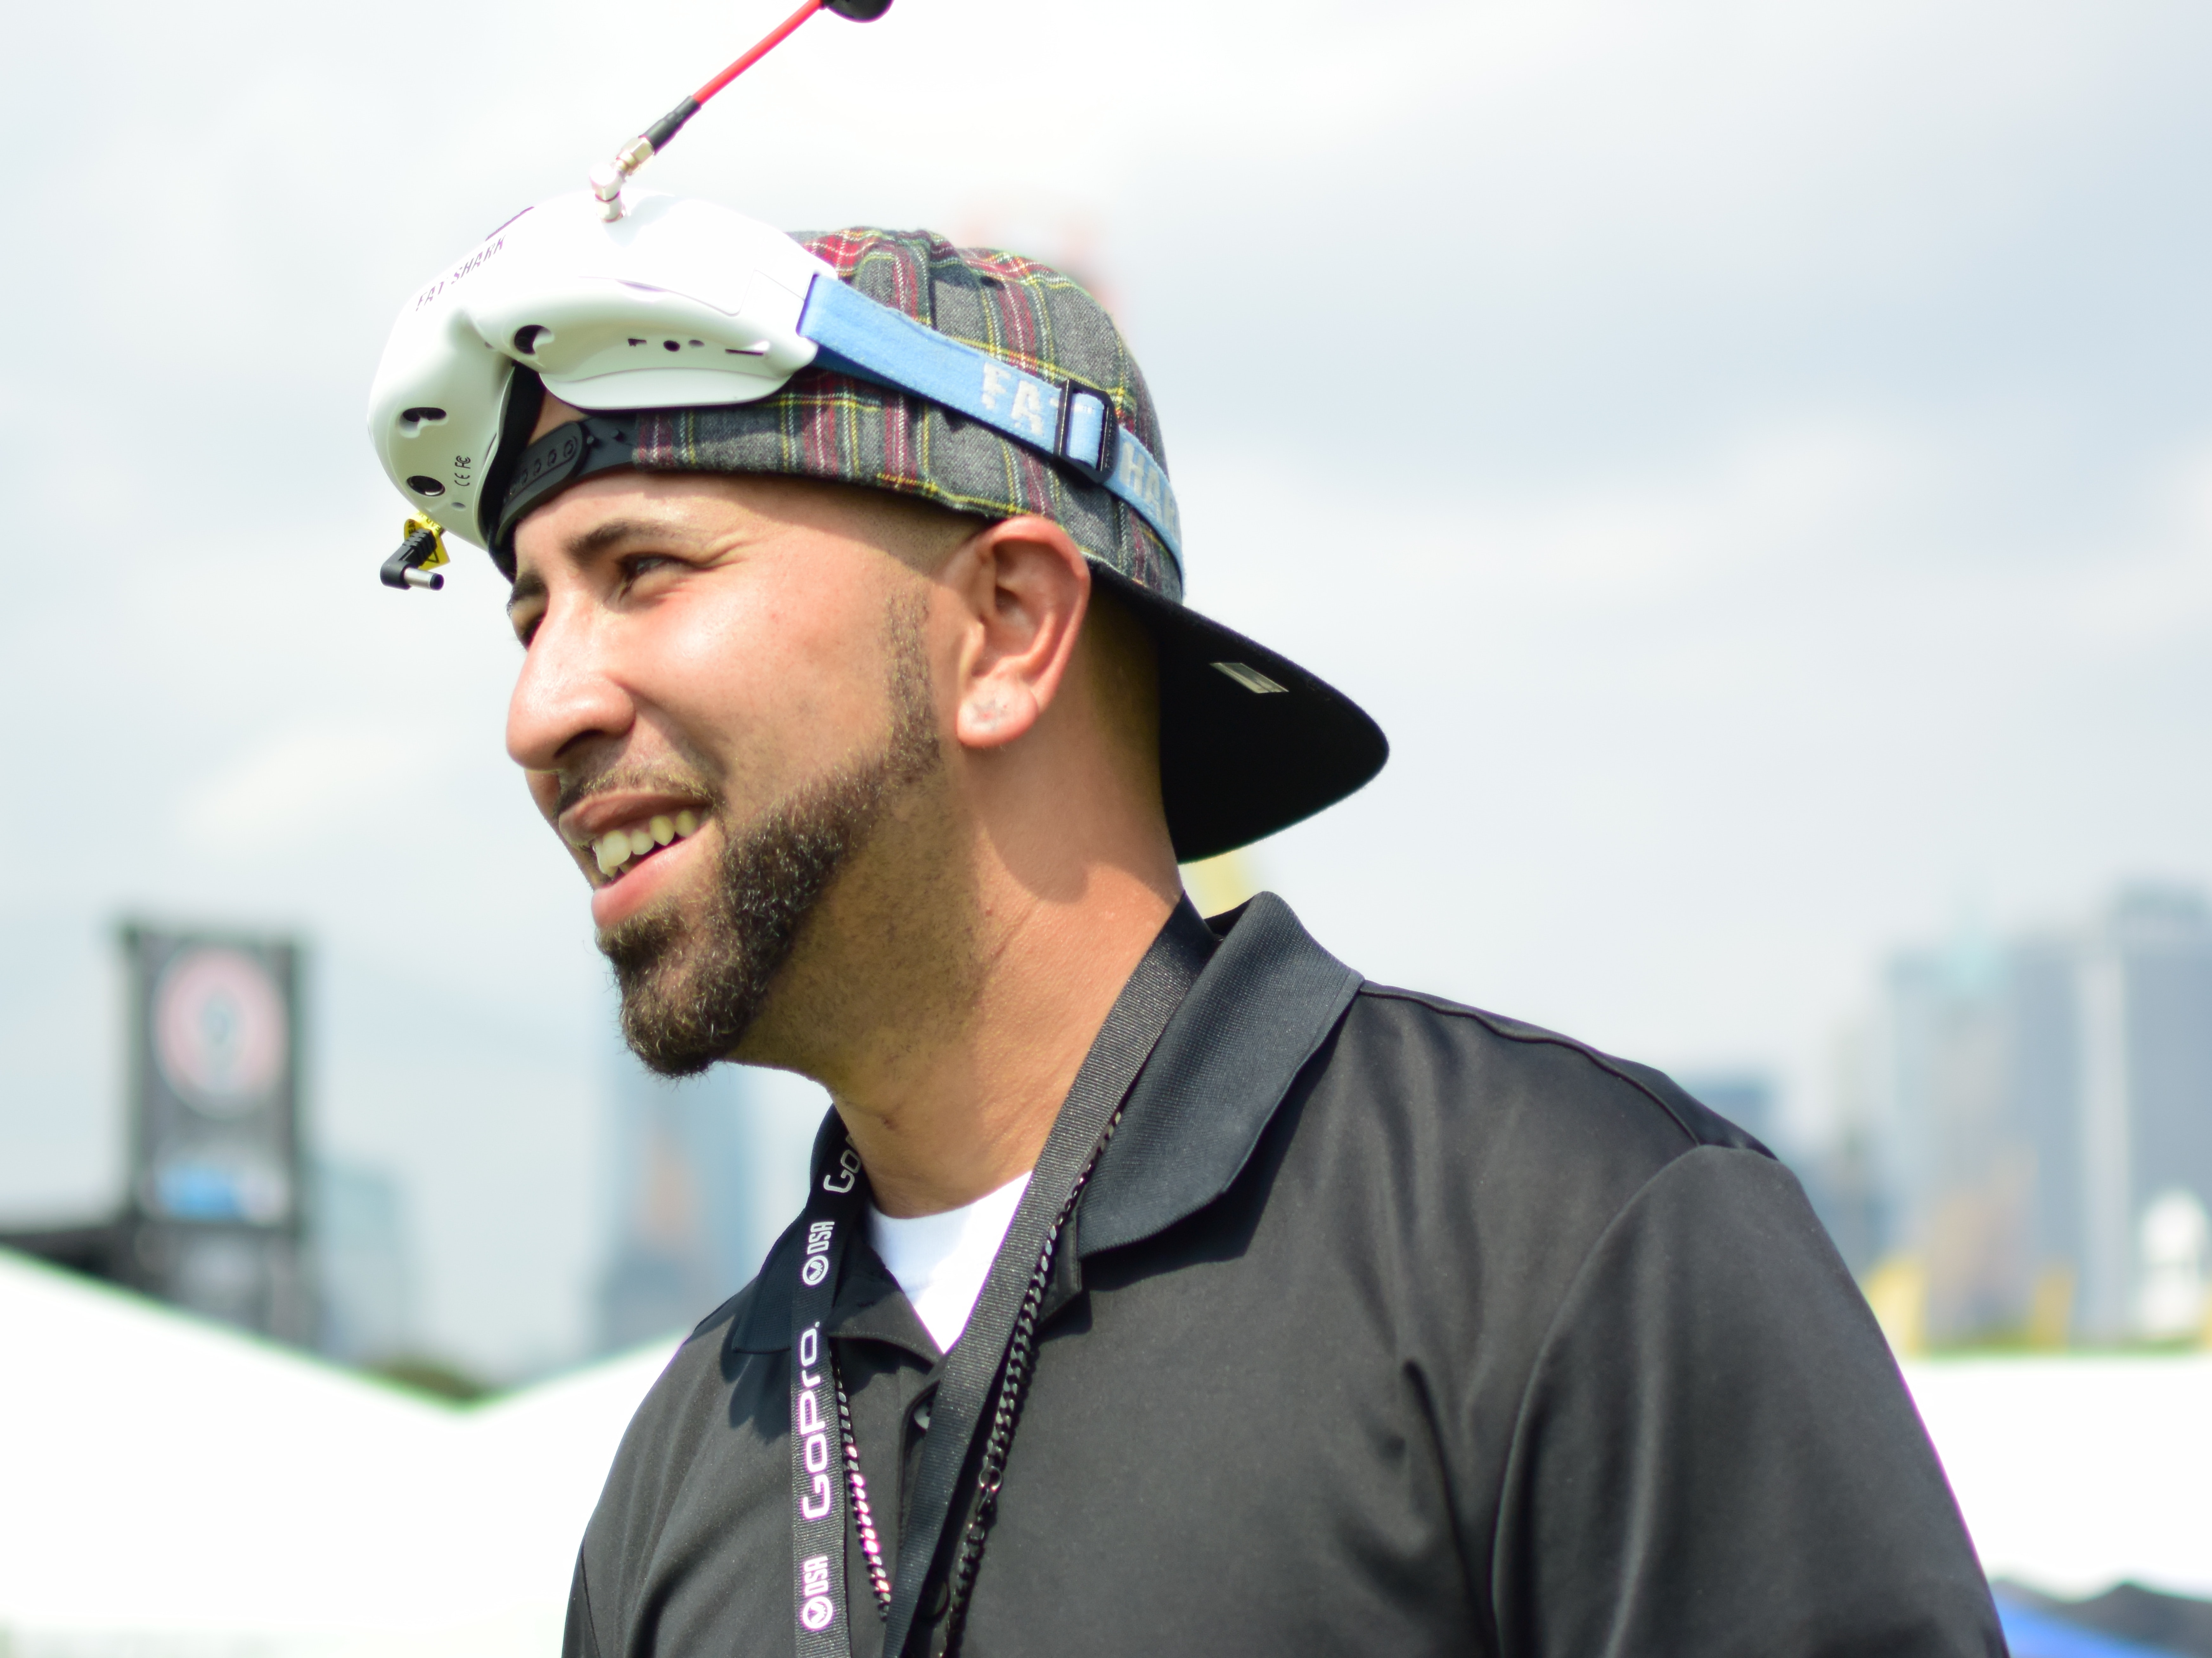 Alex Vargas believes drone racing can help gang affiliated youth.